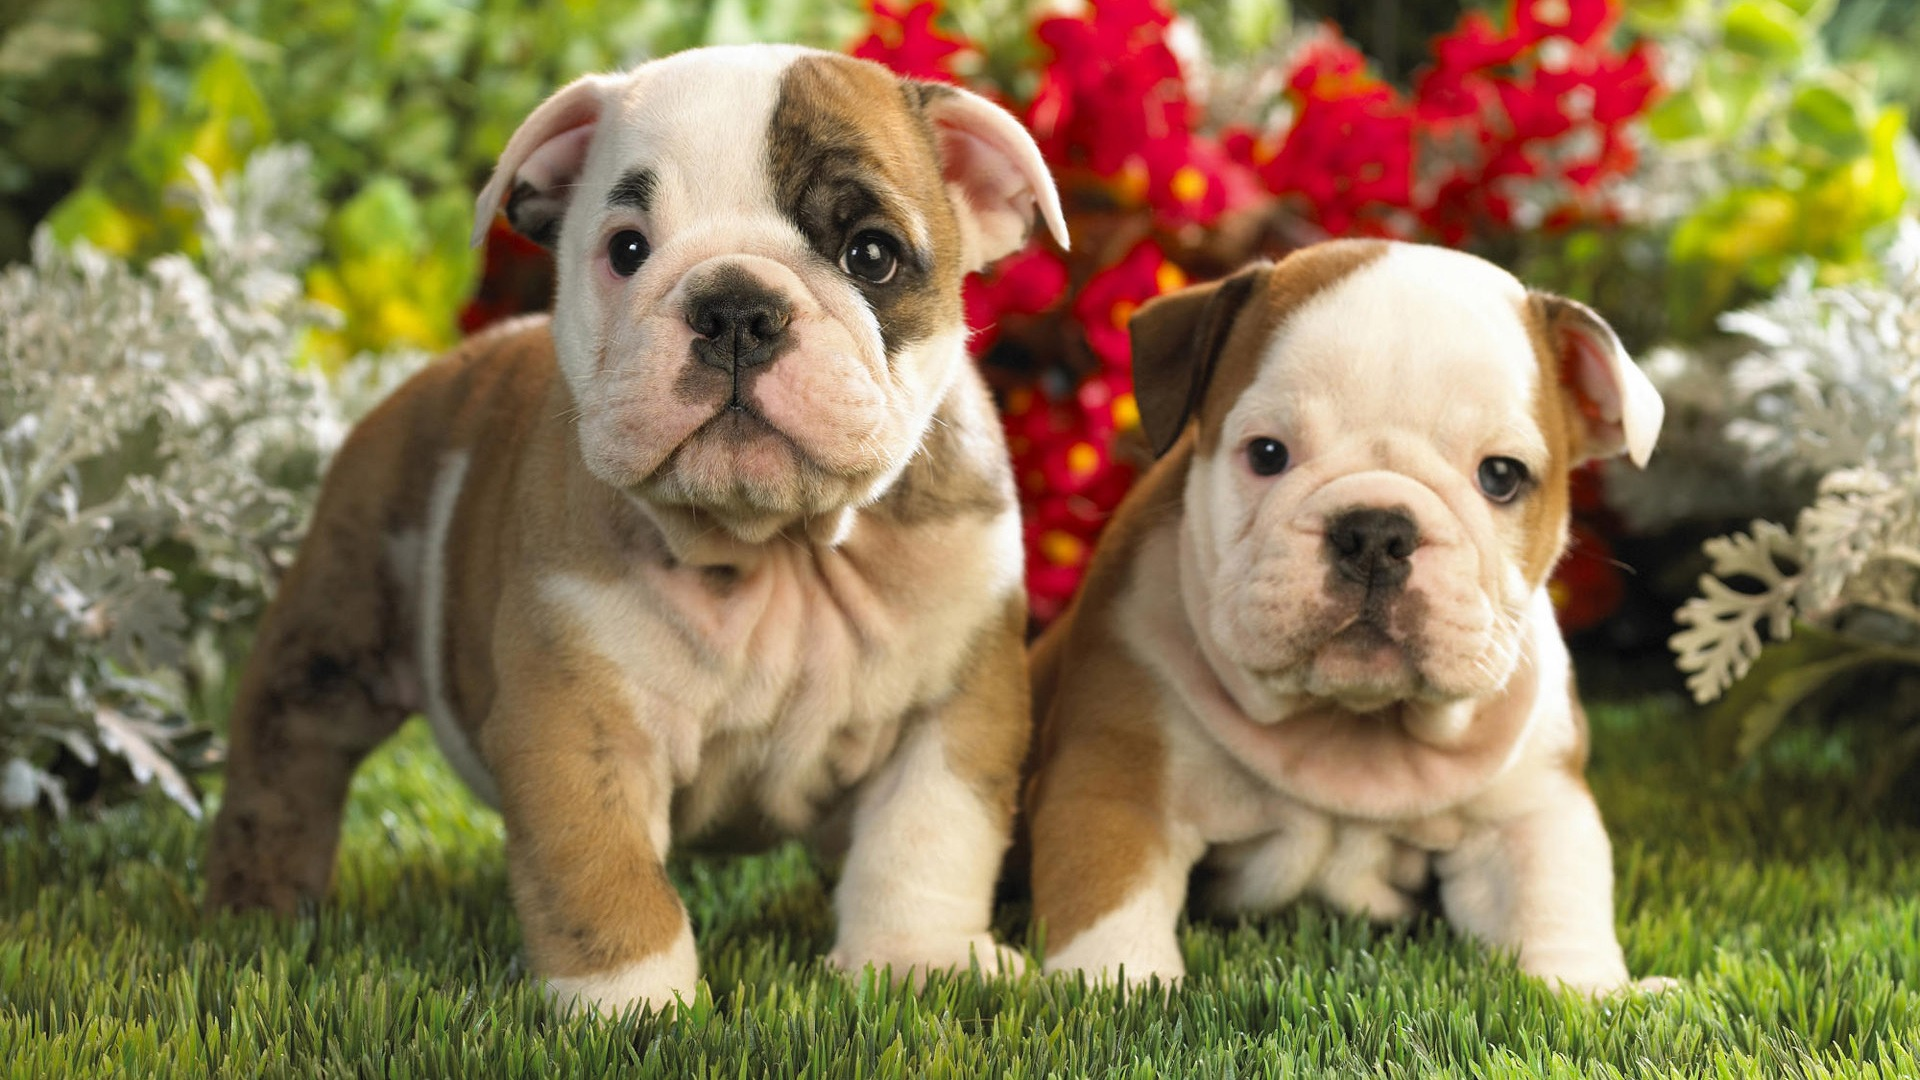 Puppies Cute HD 1080p Wallpapers Download | HD Wallpapers Source